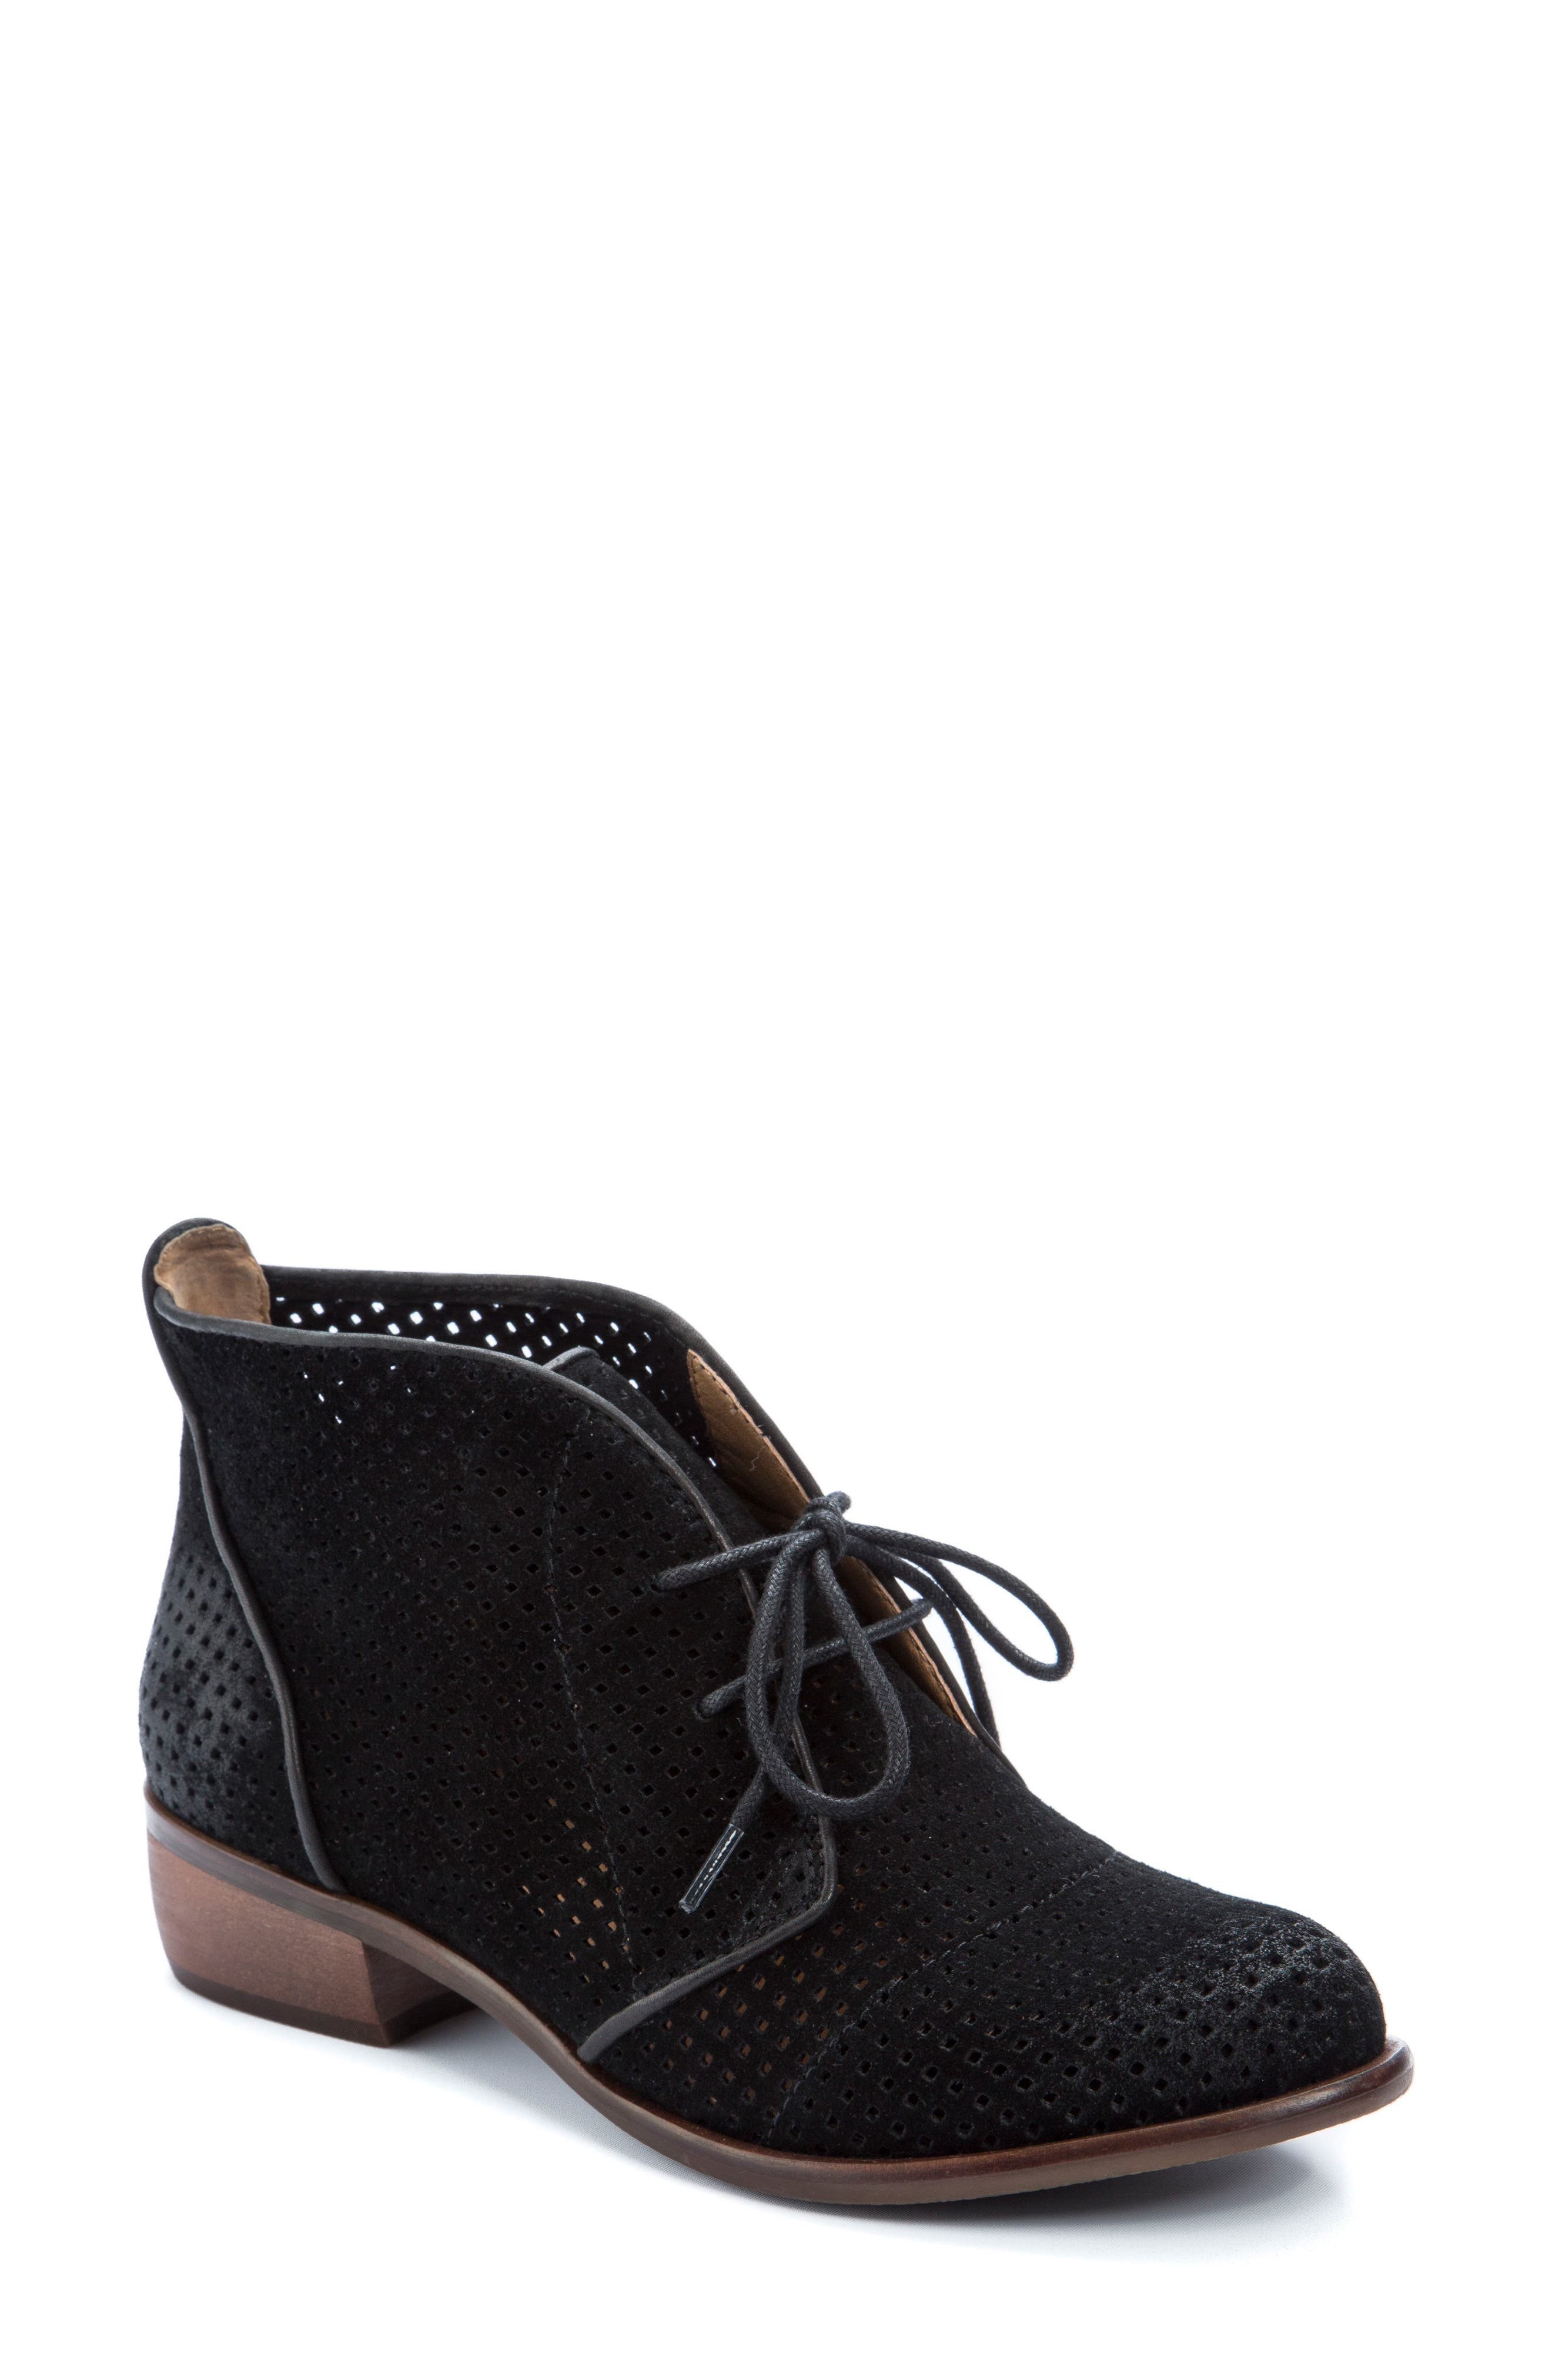 Alternate Image 1 Selected - Latigo Isaac Lace-Up Bootie (Women)